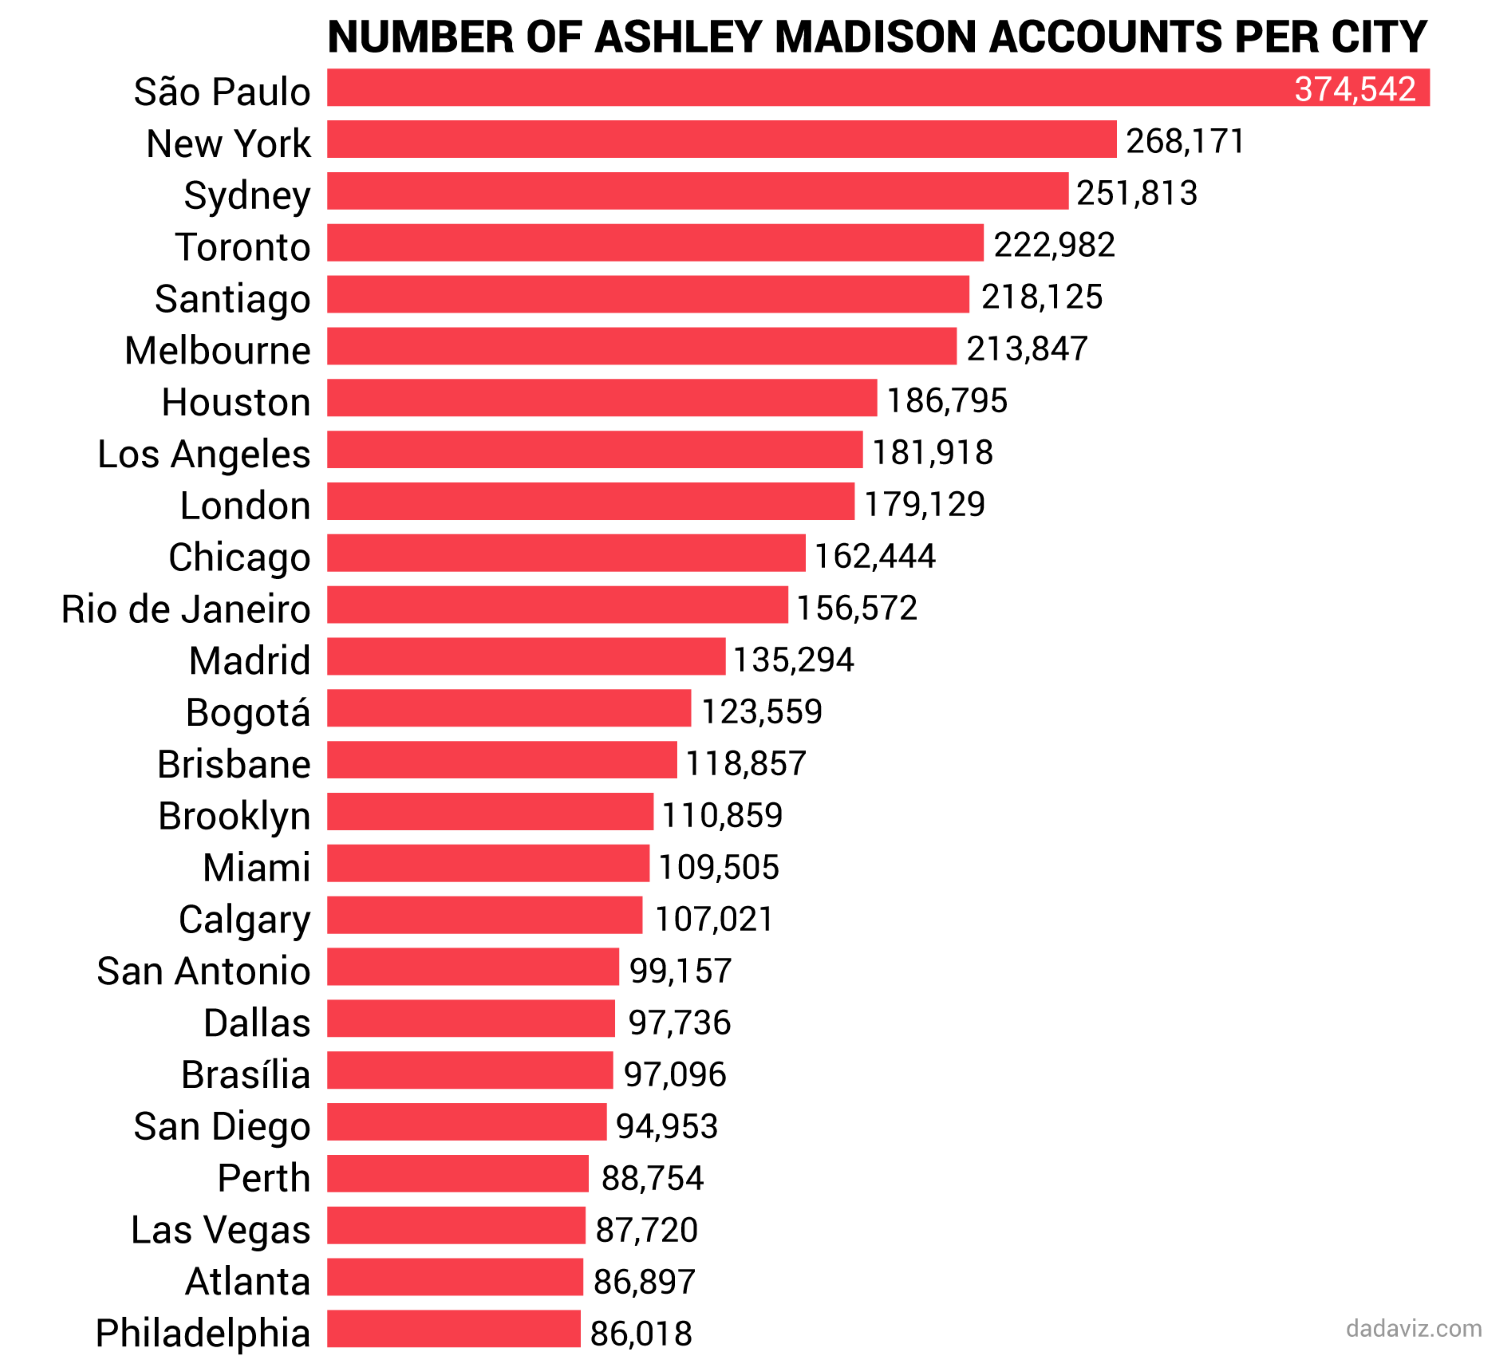 the-25-cities-with-the-highest-number-of-ashley-ma-1440000203.27-5743207